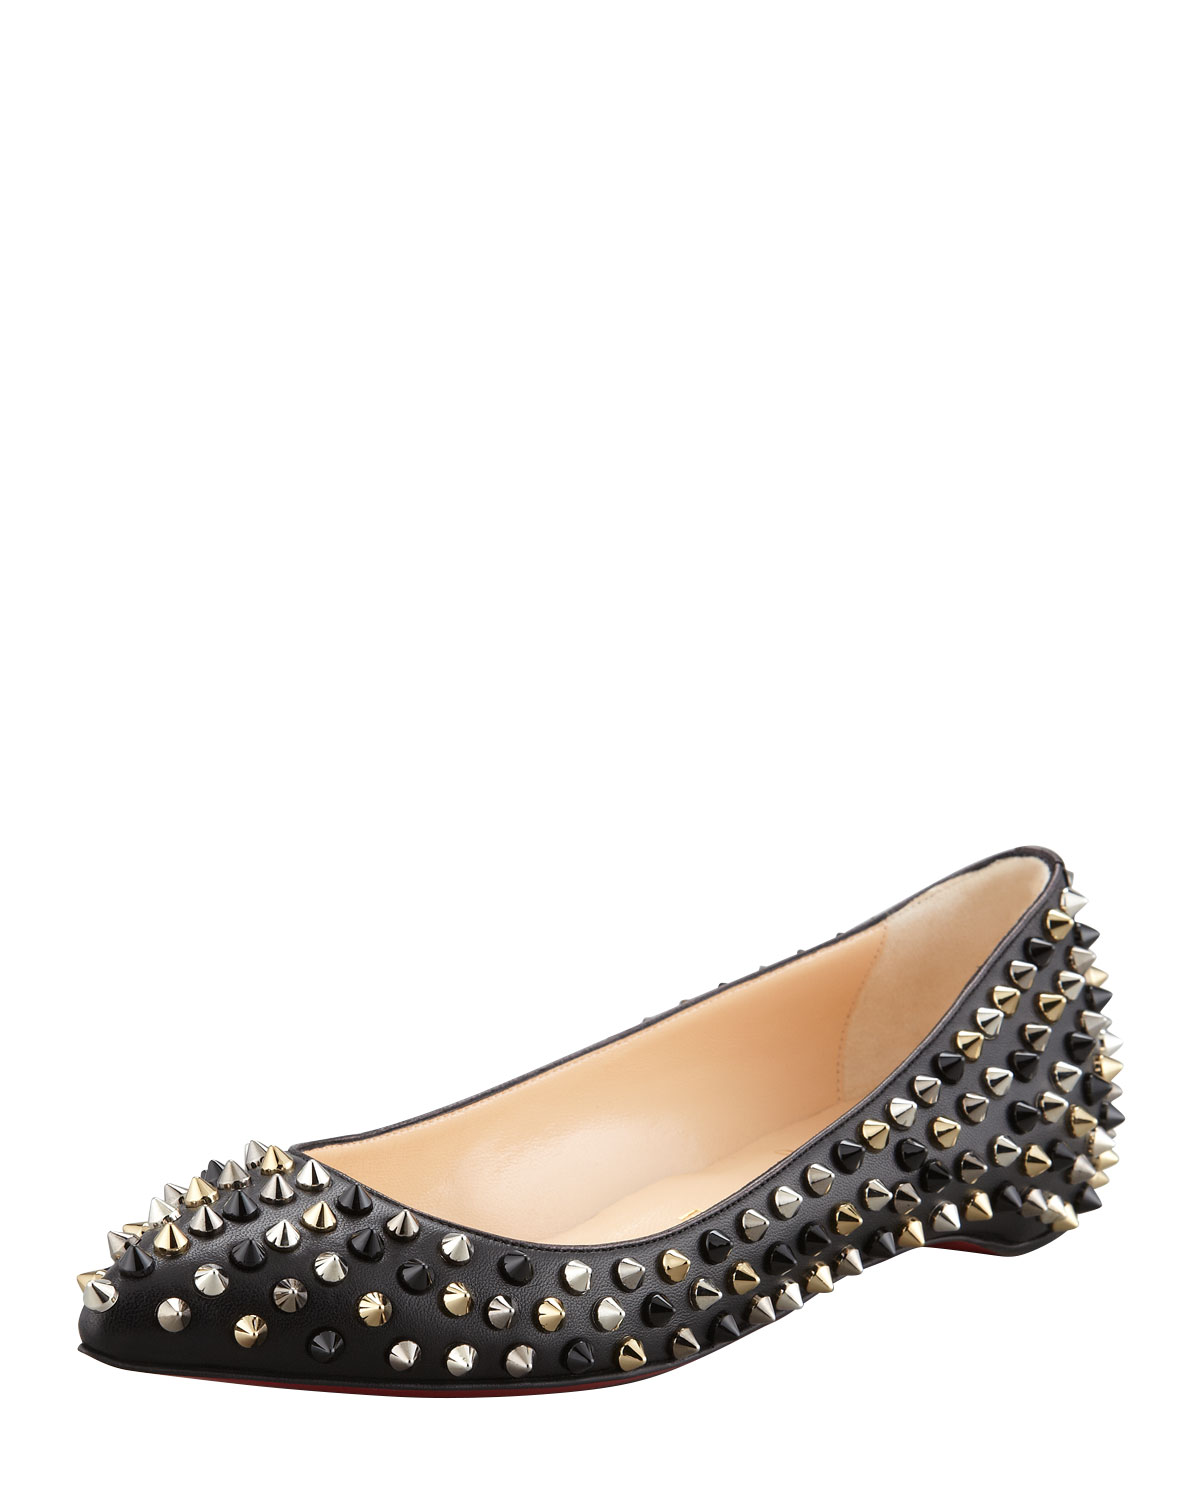 39778b473d Lyst - Christian Louboutin Pigalle Spikes Pointtoe Red Sole Flat ...